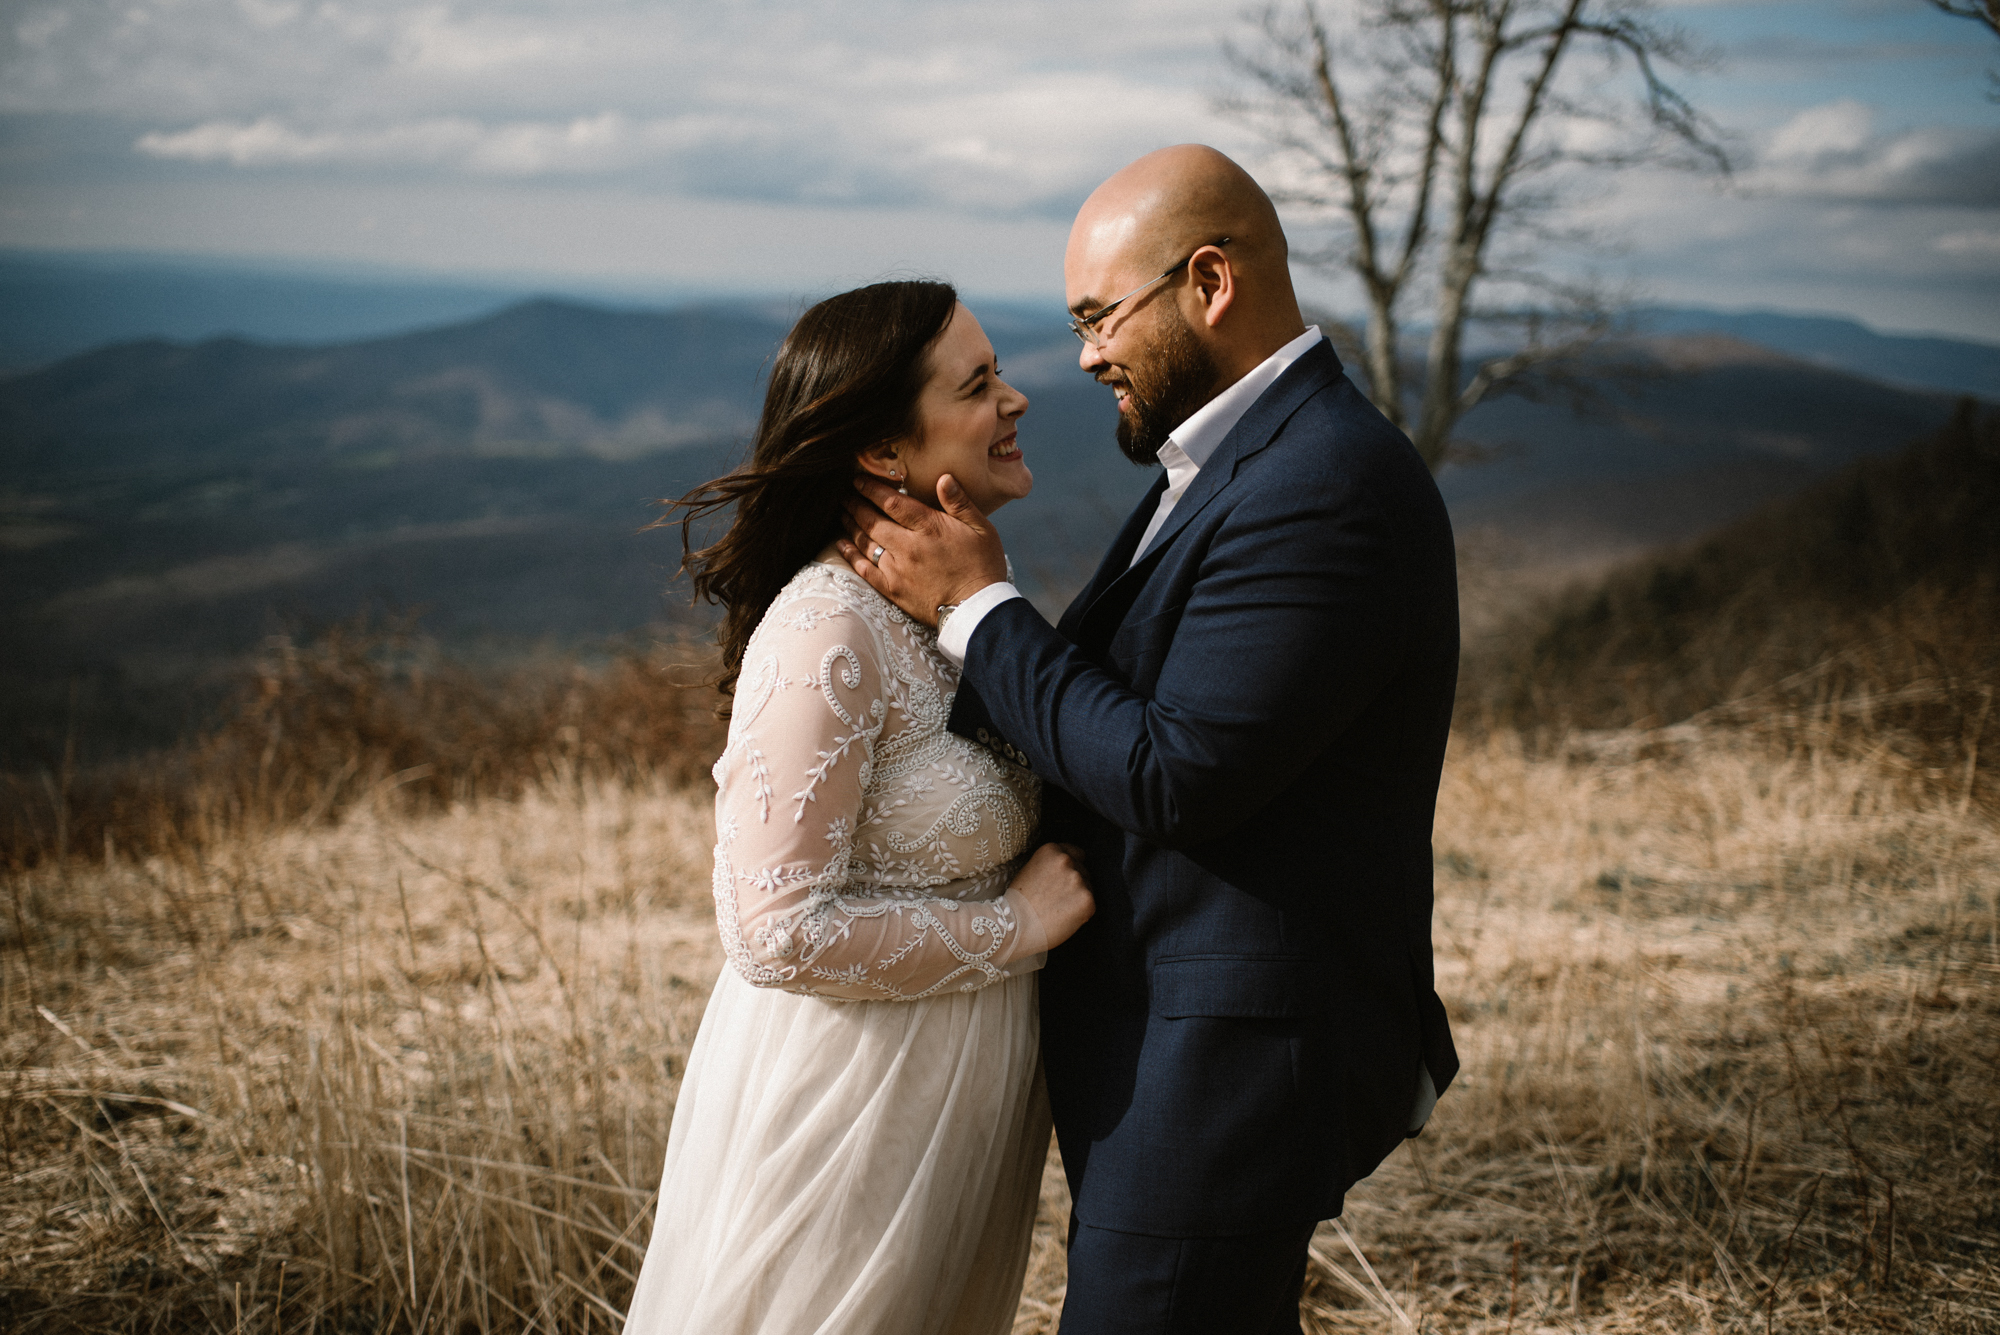 Emma and Jeddah - Intimate Luray Wedding - Shenandoah National Park Wedding - Adventure Elopement in Virginia - Shenandoah National Park Elopement_45.jpg